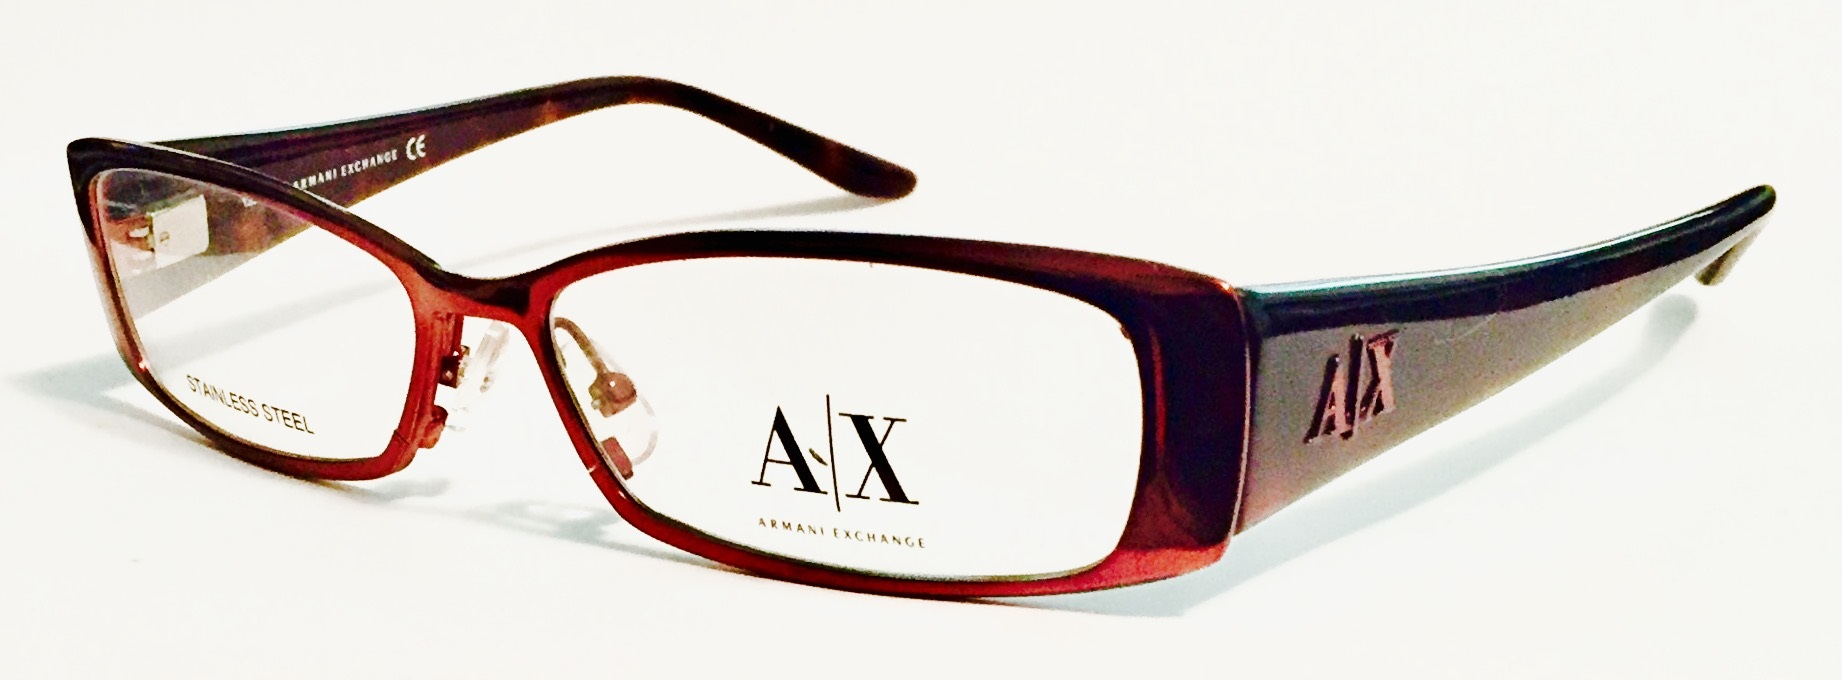 CLEARANCE ARMANI EXCHANGE 217